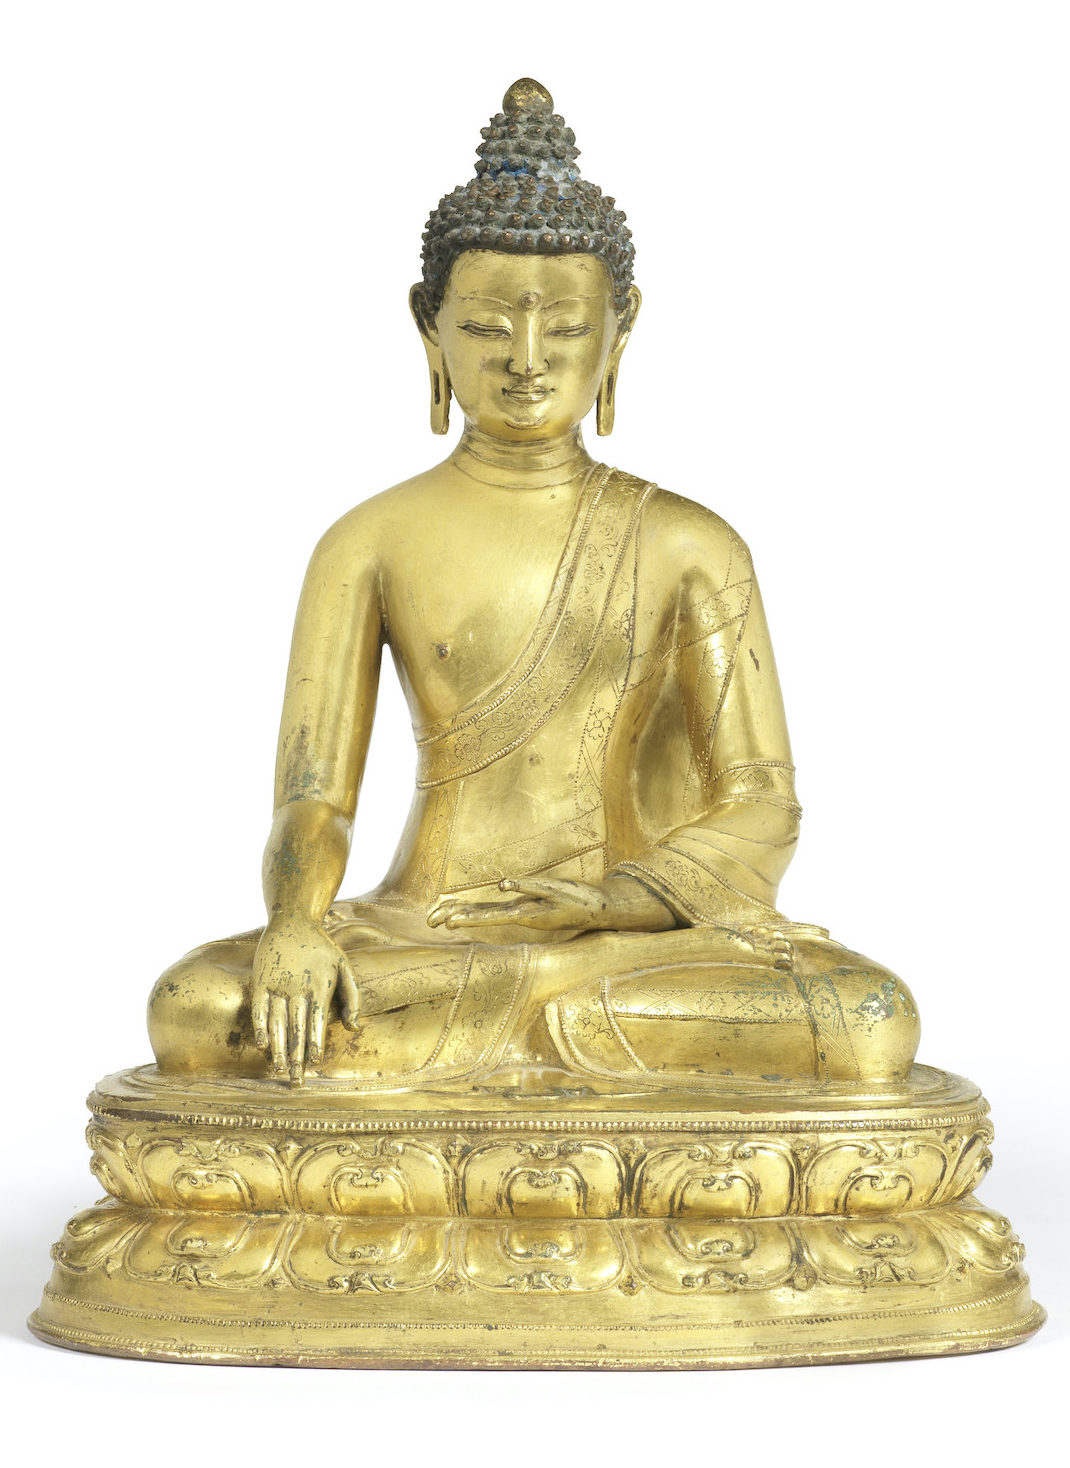 A VERY RARE GILT-BRONZE FIGURE OF BUDDHA SHAKYAMUNI, Tibet, 15th century, 27.5cm (10 7/8in) high. £120,000-150,000